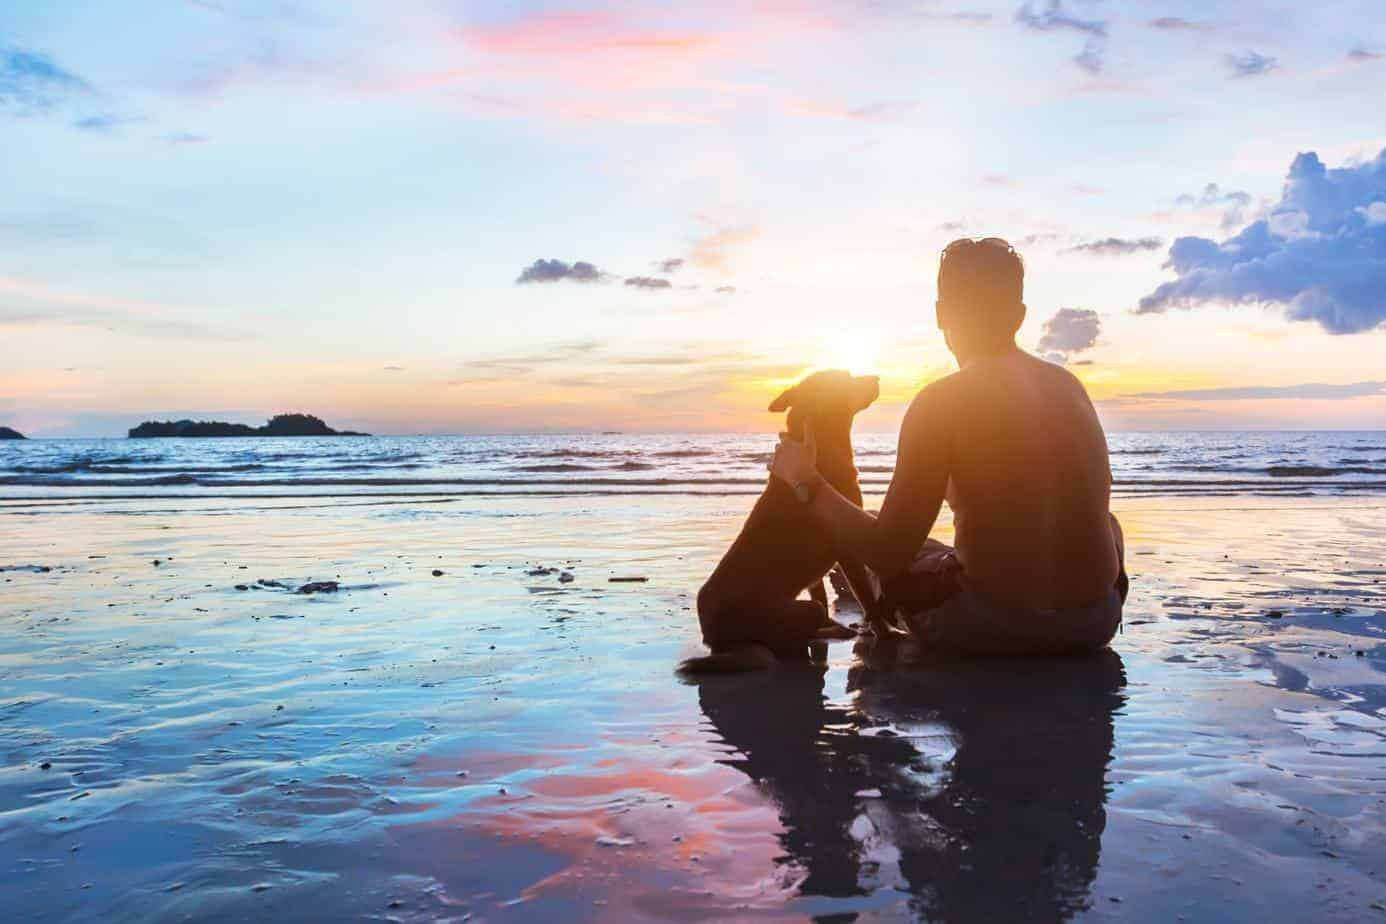 Dogs help people with mental illness by reducing the health risks of loneliness. Dog and man watch sunset on beach.